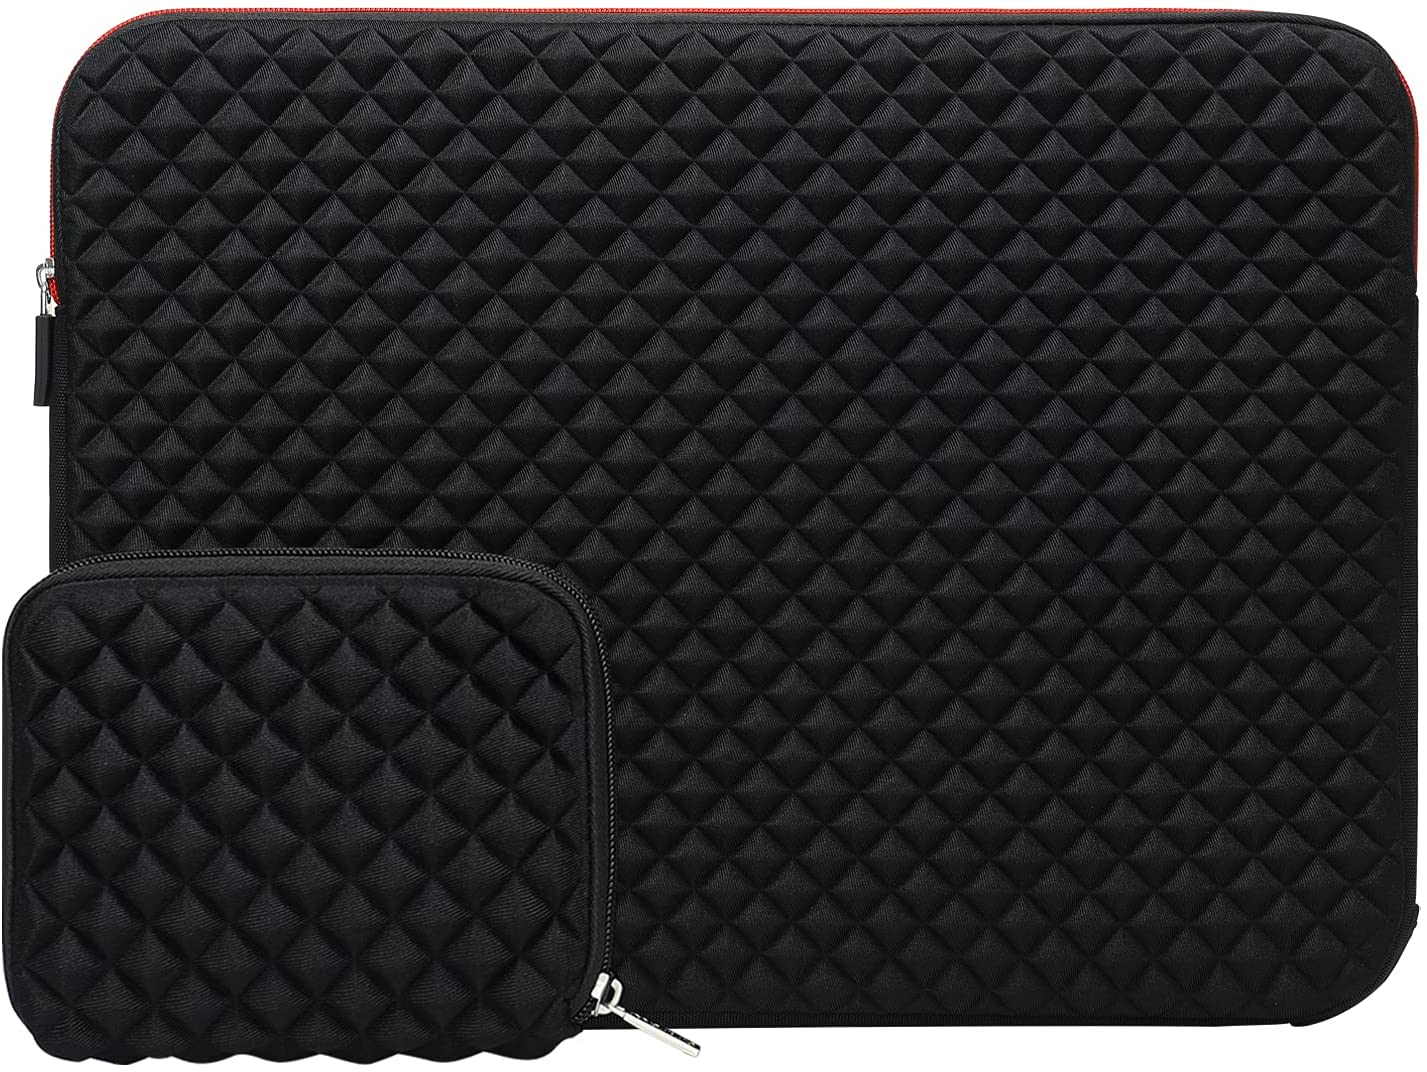 MOSISO Laptop Sleeve Compatible with 17-17.3 inch Dell Inspiron/HP Pavilion/Ideapad/Acer/Alienware/HP Omen, Neoprene Diamond Foam Carrying Bag Cover with Corner Protection & Small Case, Black